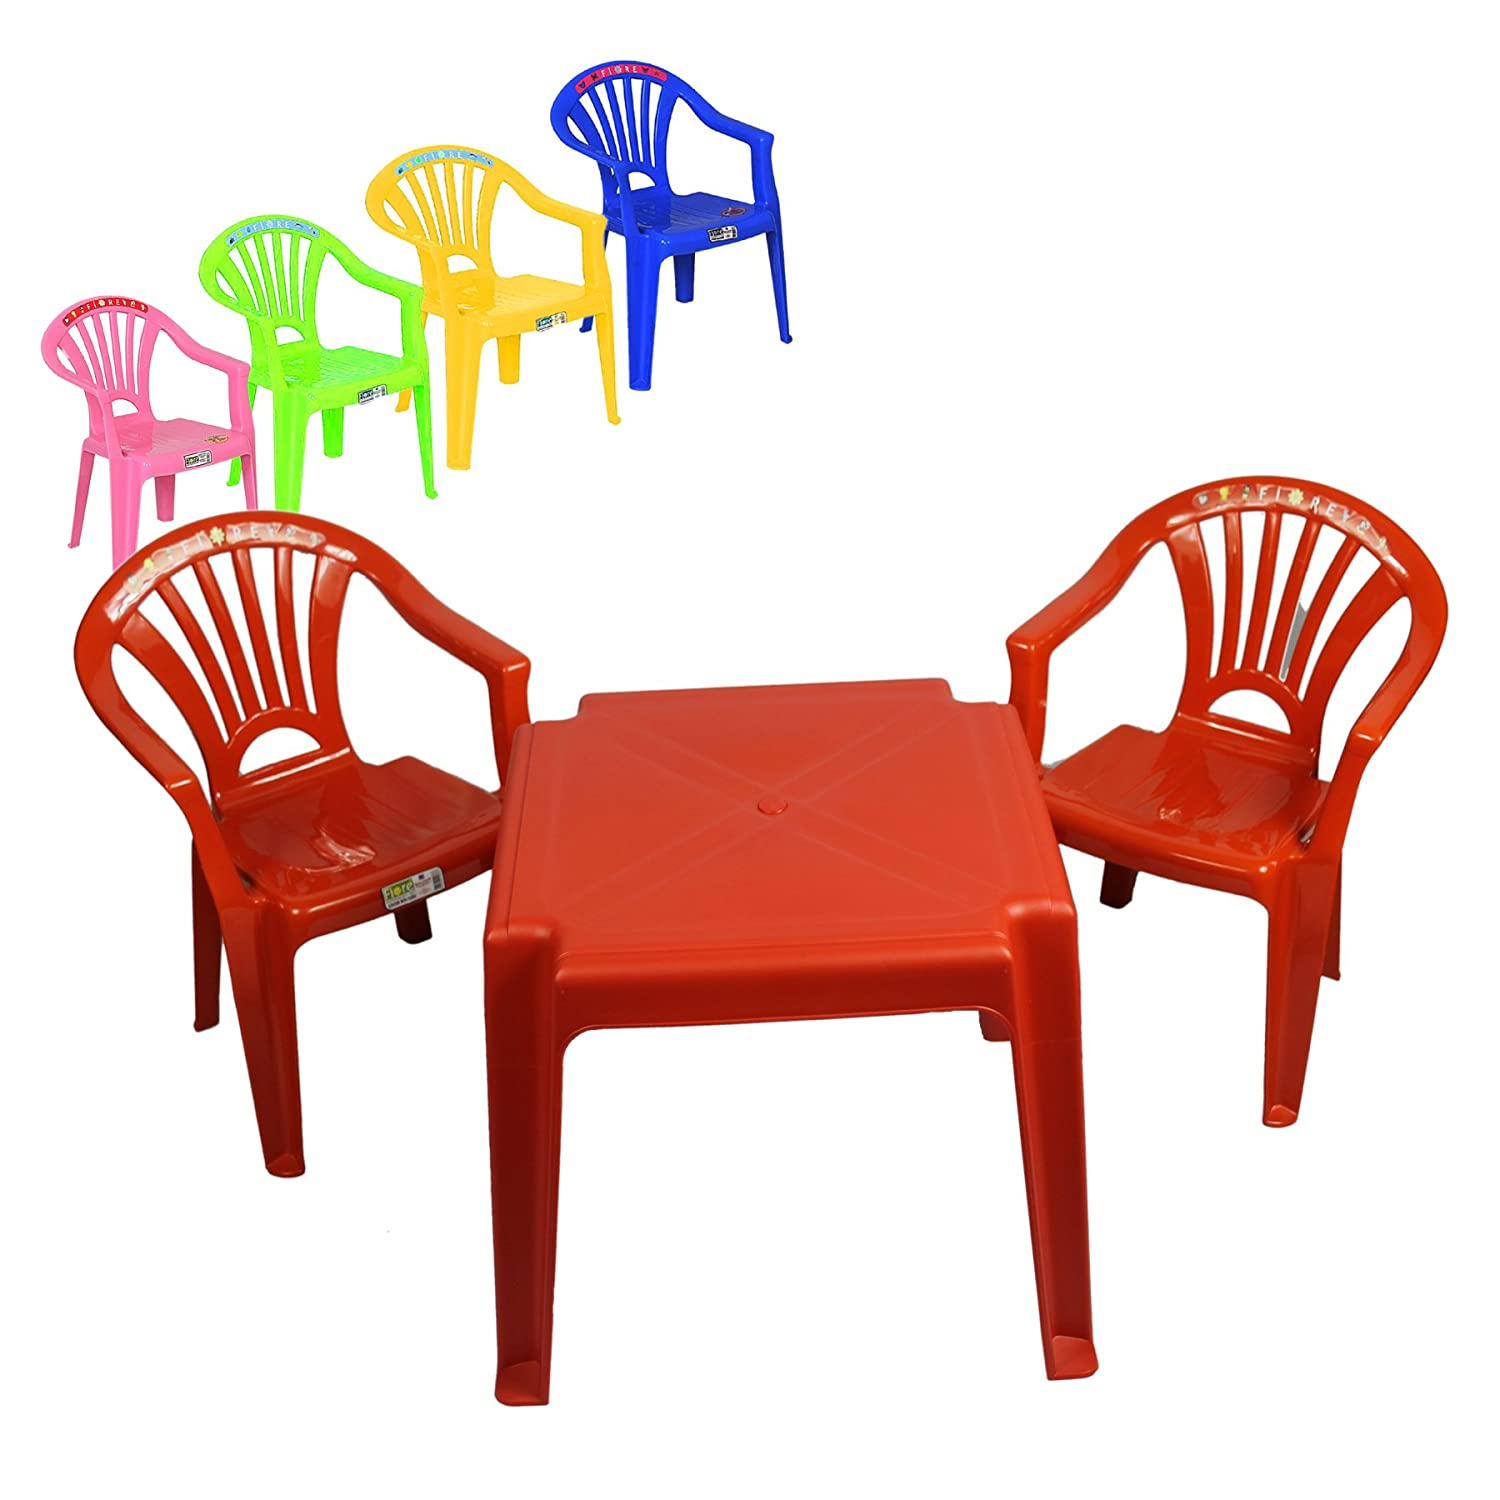 Children 2 Chairs and table Set Furniture for Boys and Girls for Activity Play and Study in Pink, Blue, Red, Yellow Green (Blue) Toyo